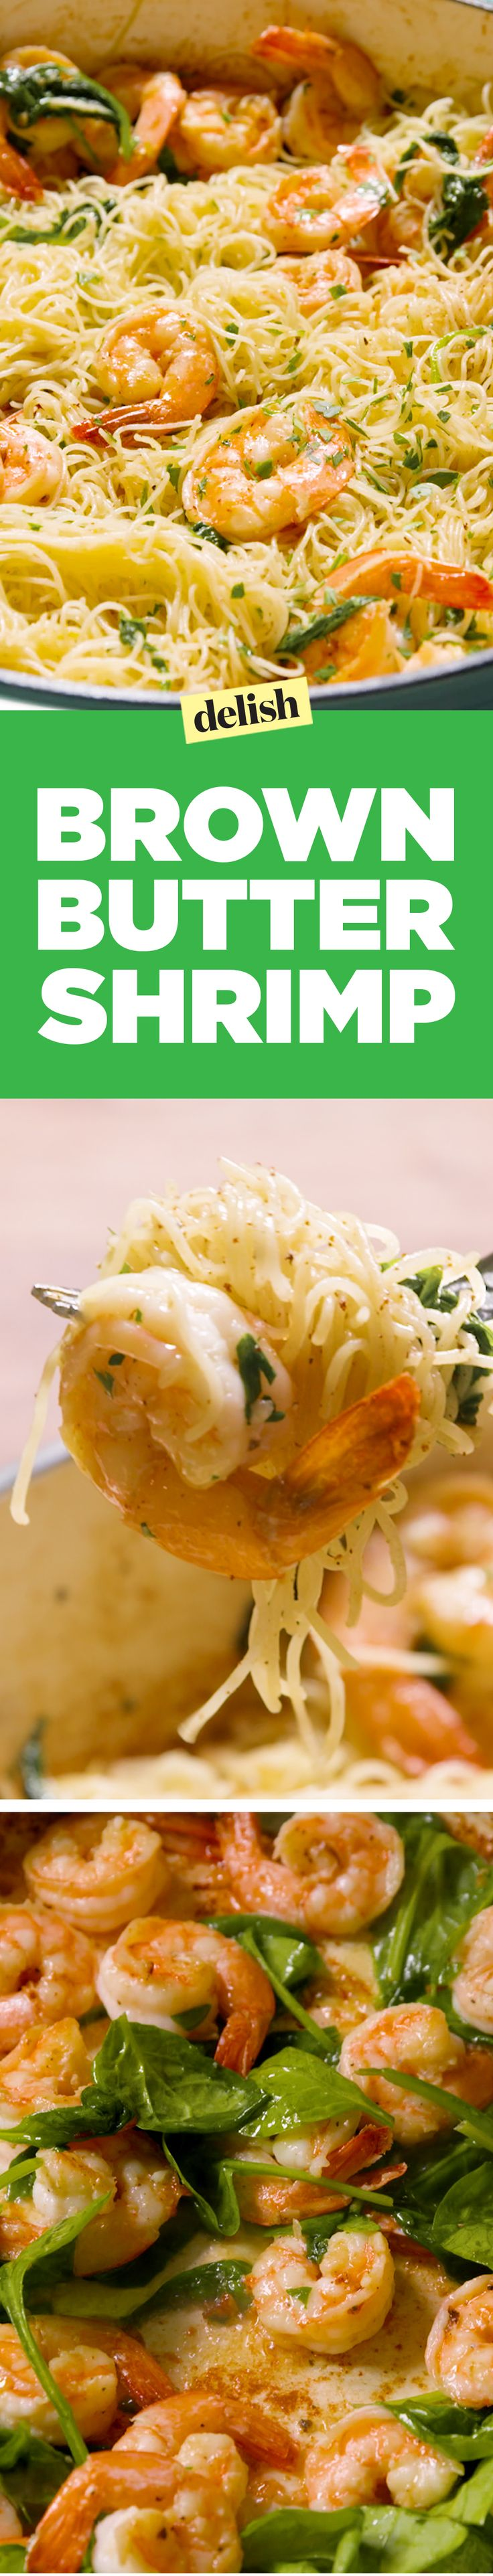 Brown butter shrimp with angel hair pasta tastes like heaven. Get the recipe on Delish.com.